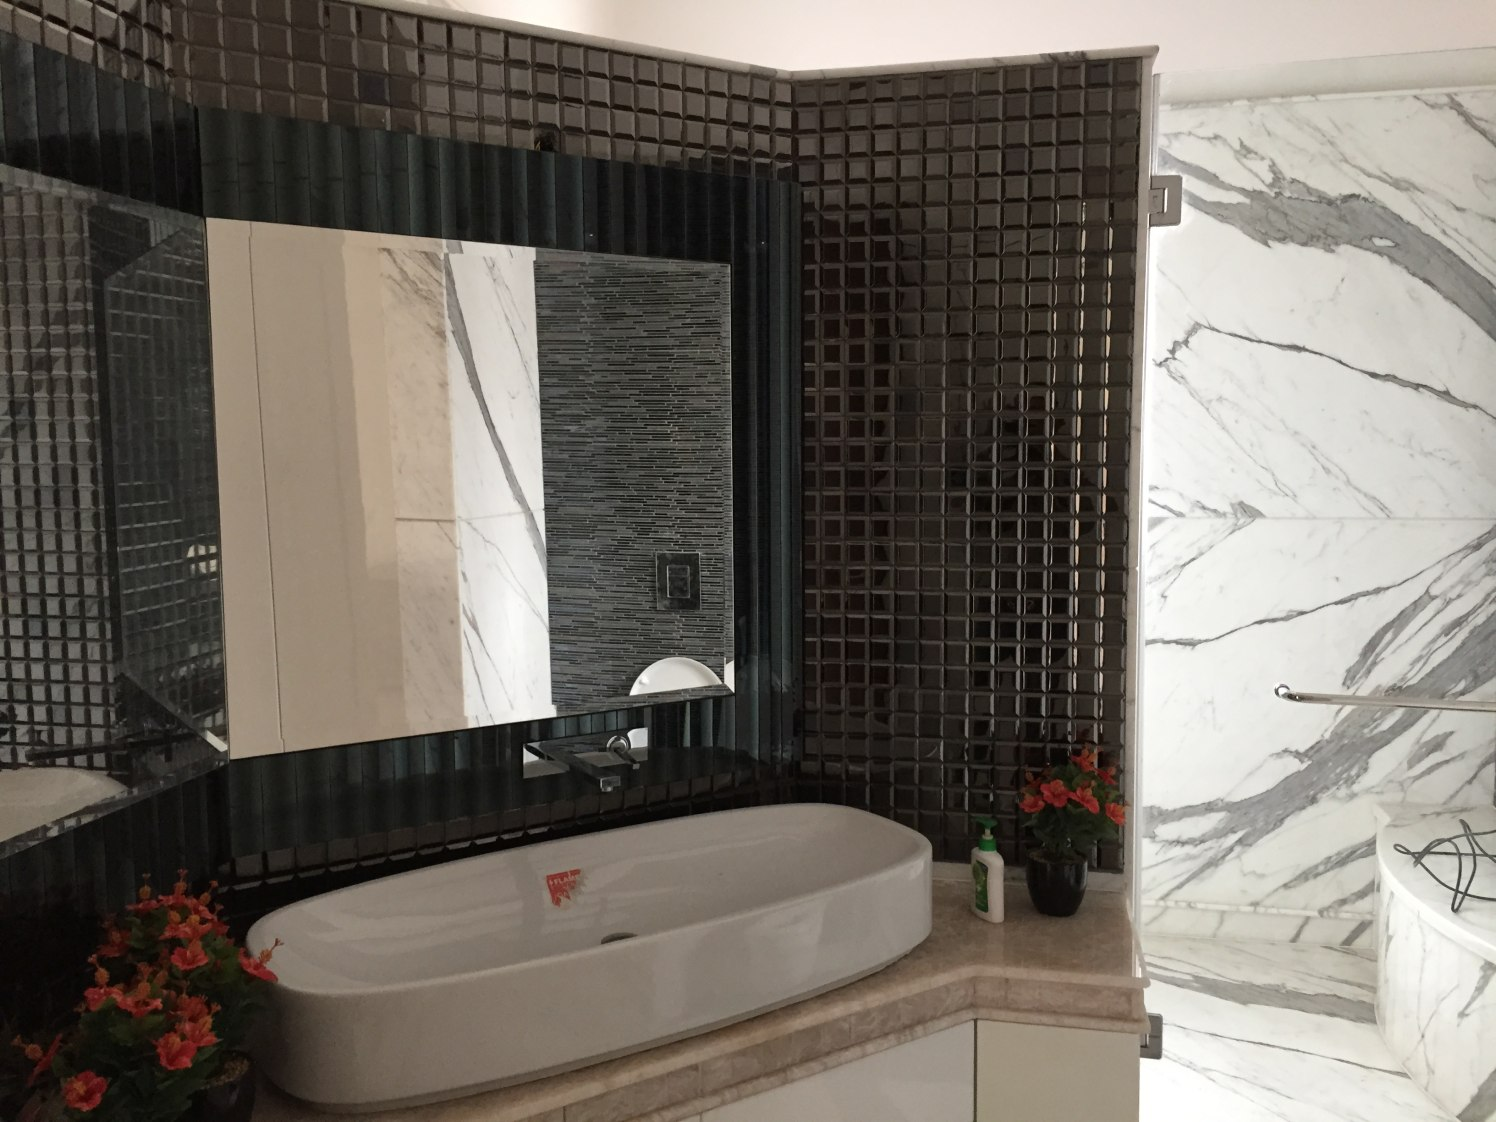 Black and white themed Bathroom With Basin With Square Wall Mirror by Tarique Anwar Bathroom Contemporary | Interior Design Photos & Ideas